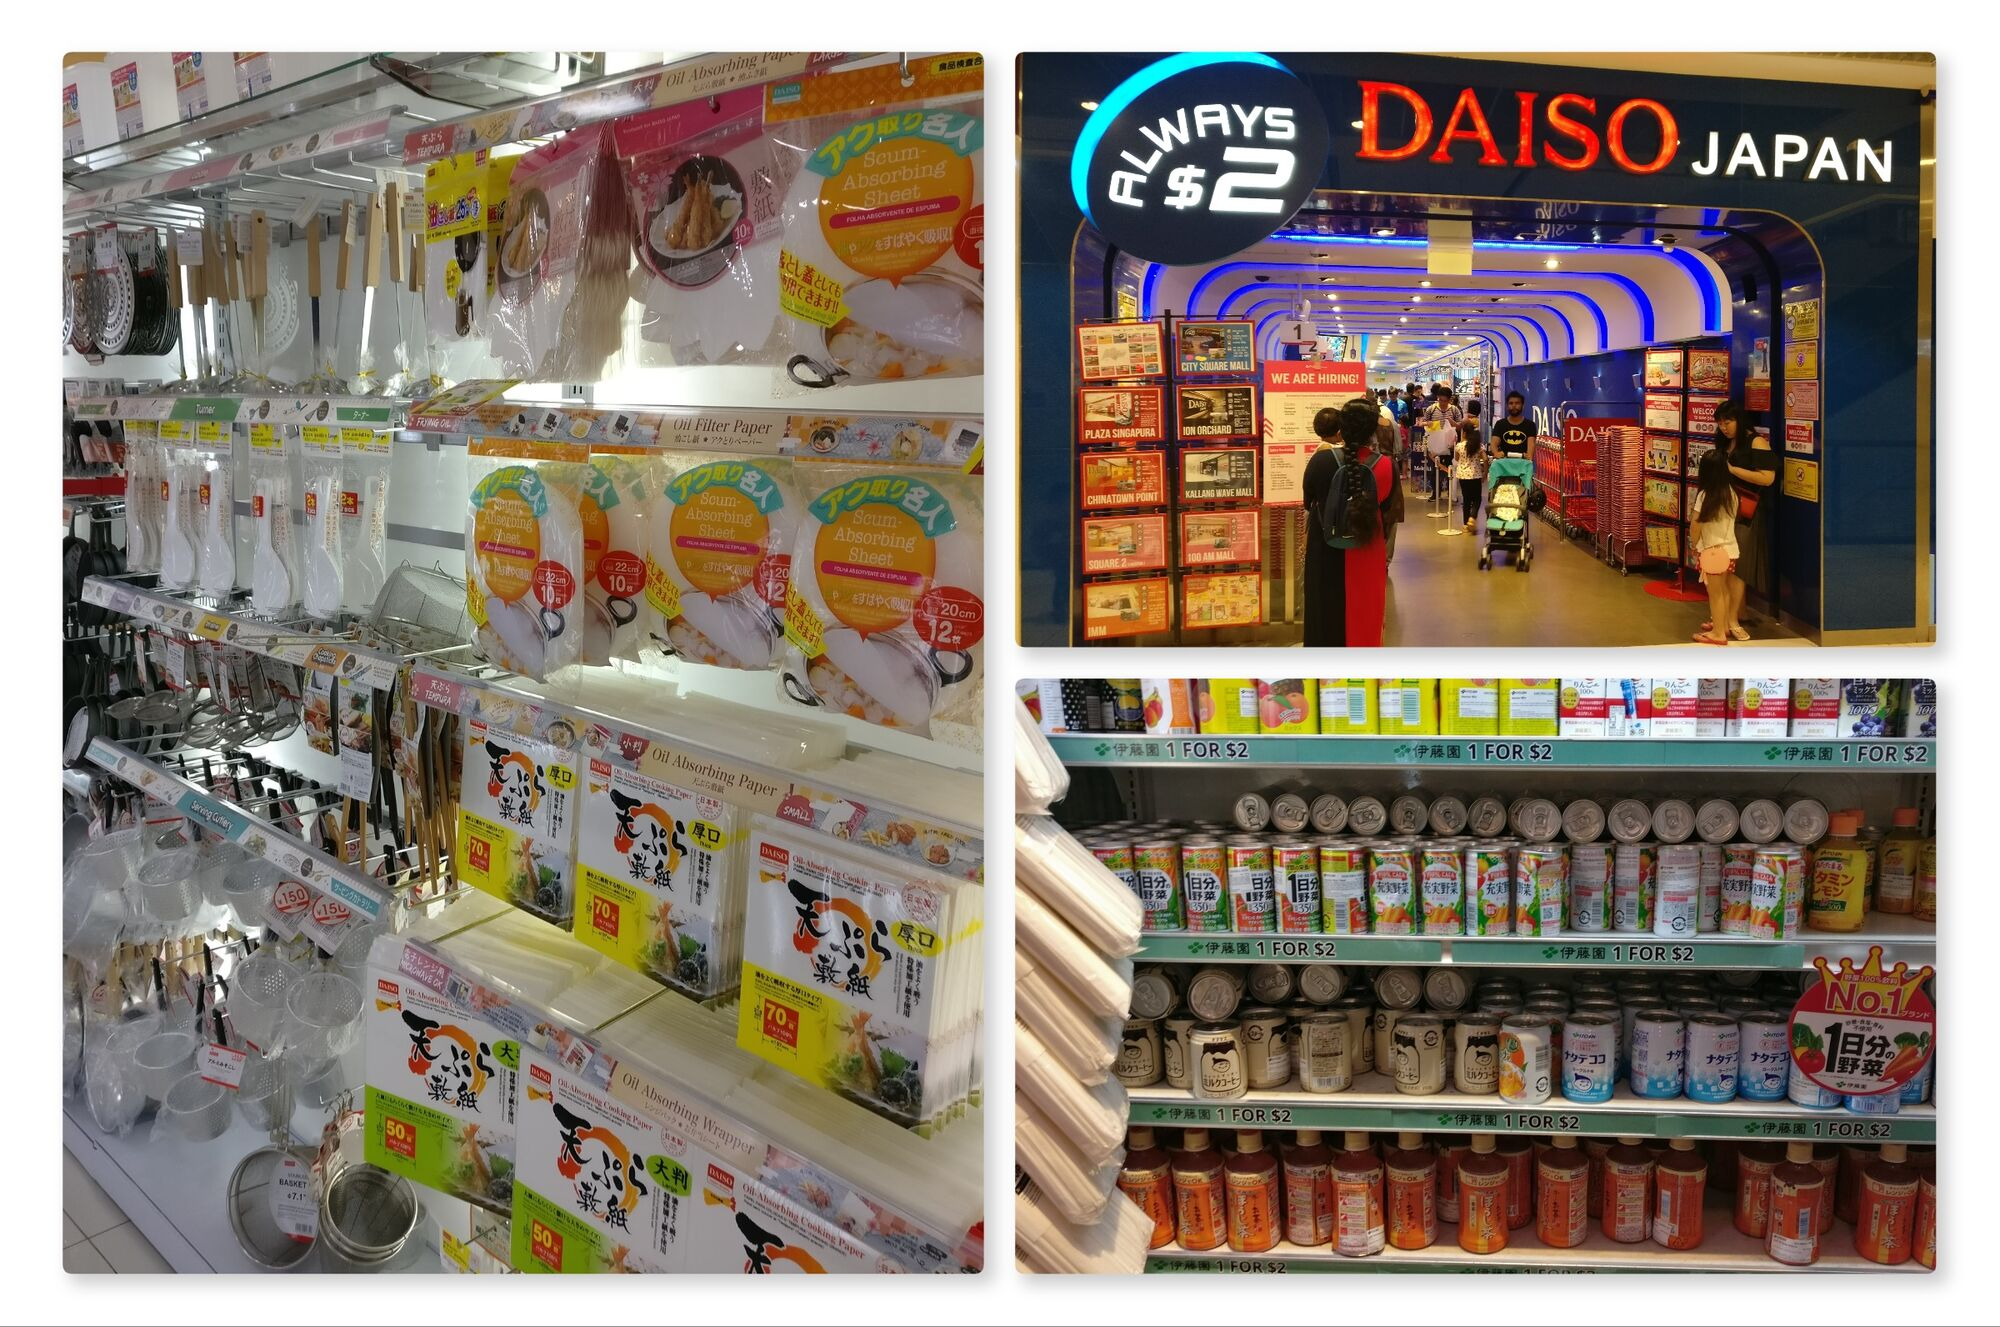 Daiso Japan - The Two Dollar store